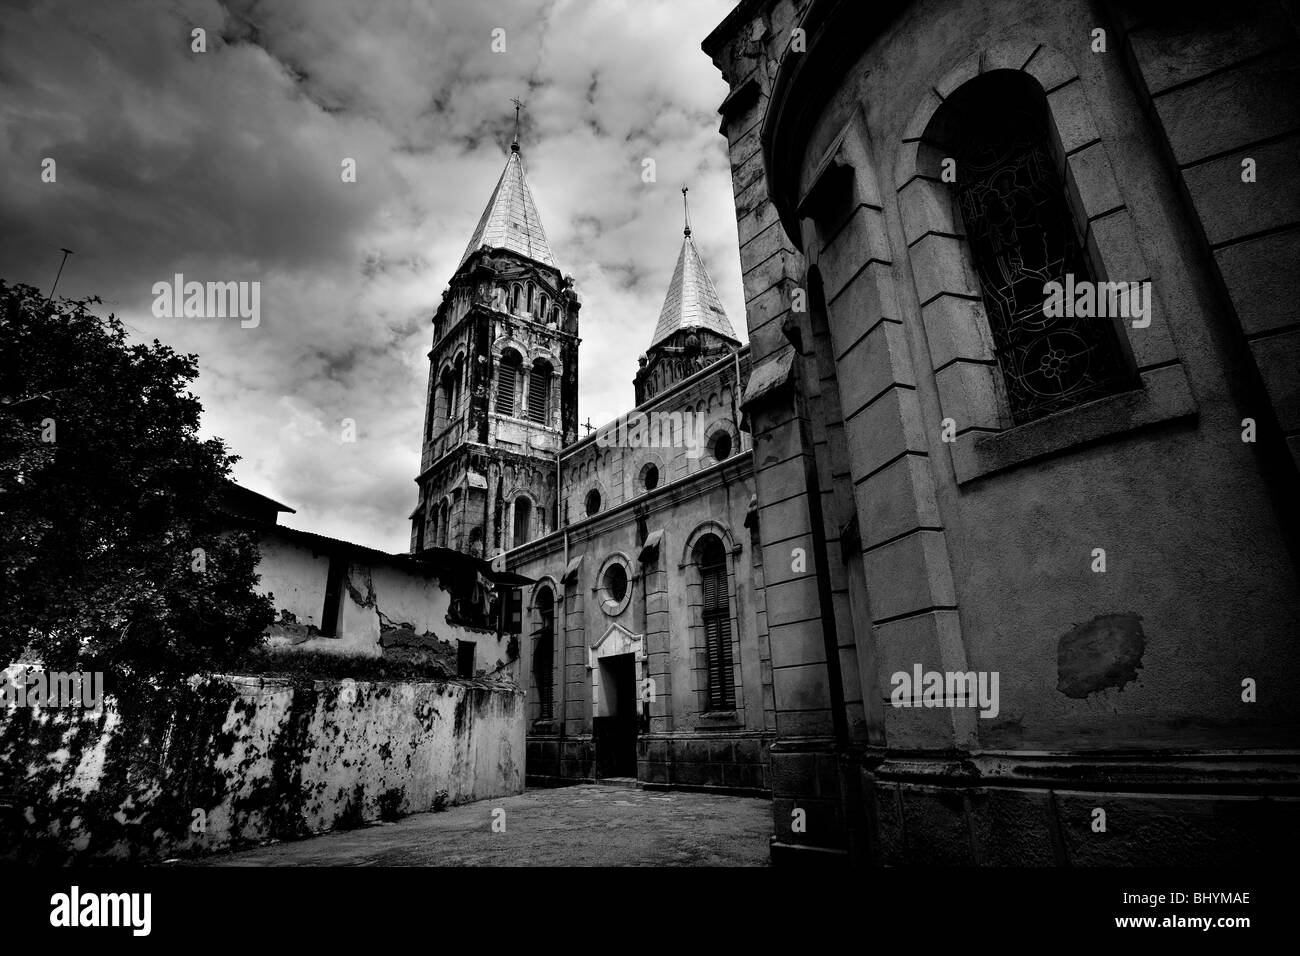 St Joseph's Cathedral, Stone Town, Zanzibar, Tanzania, East Africa - Stock Image